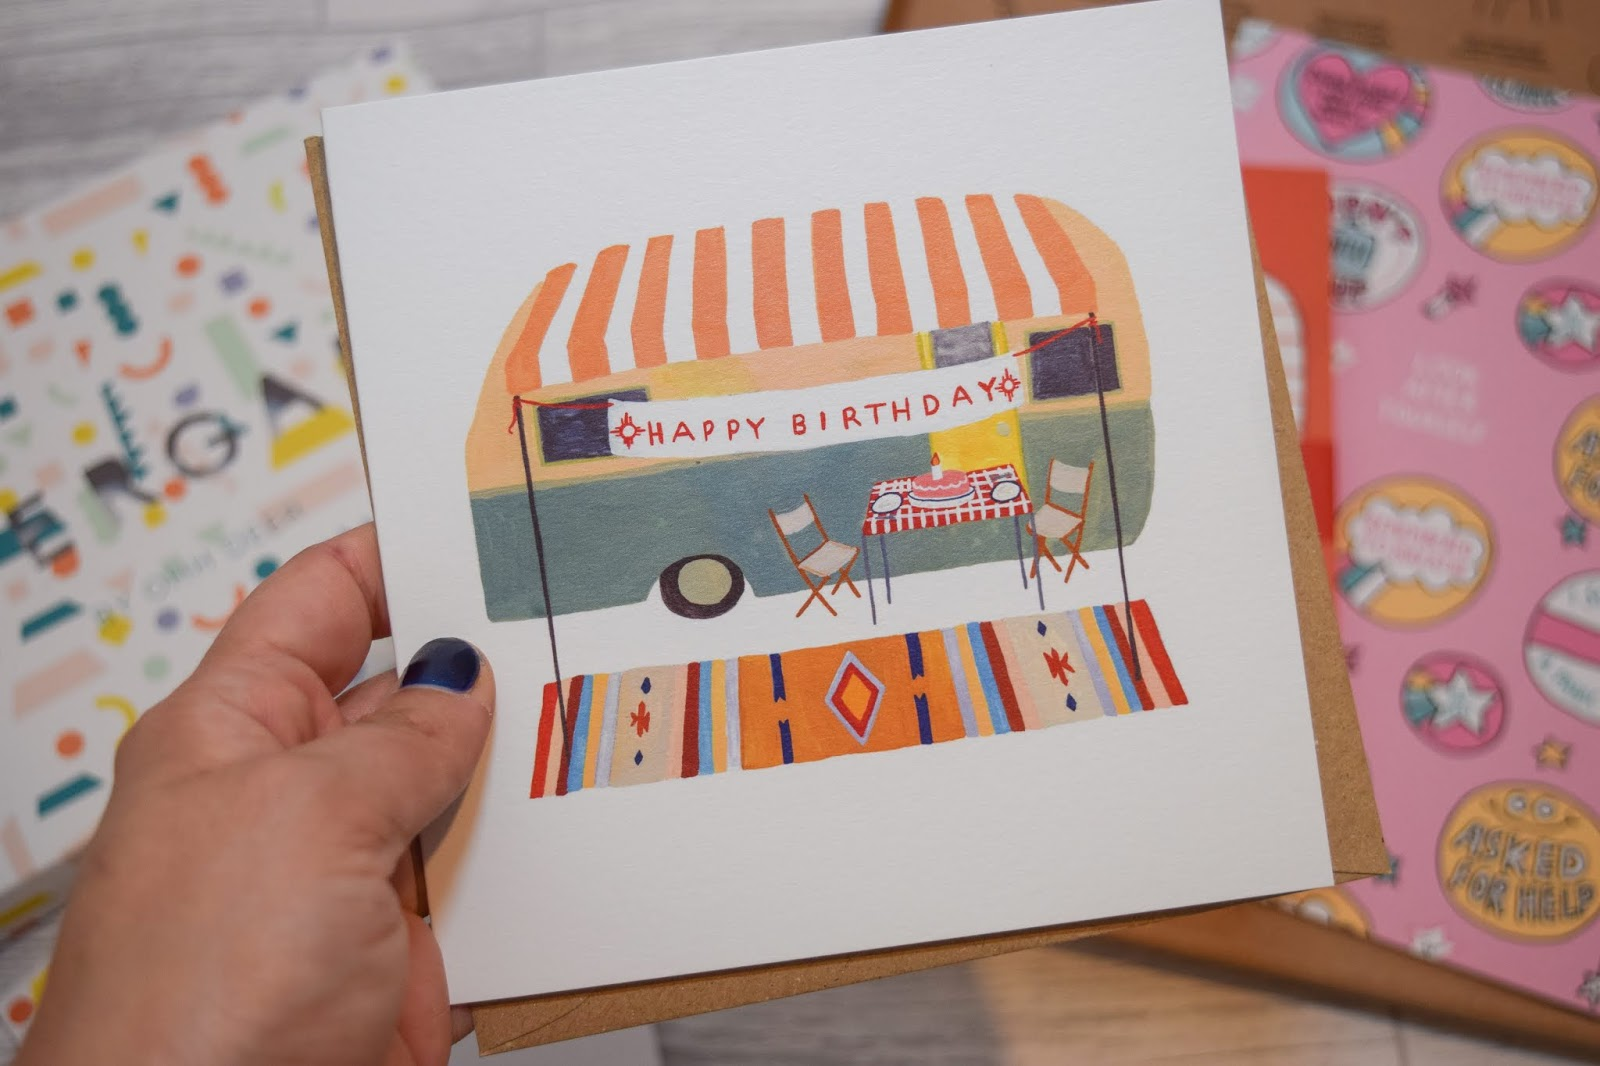 A hand holding a birthday card with a camper trailer and a happy birthday sign in front.